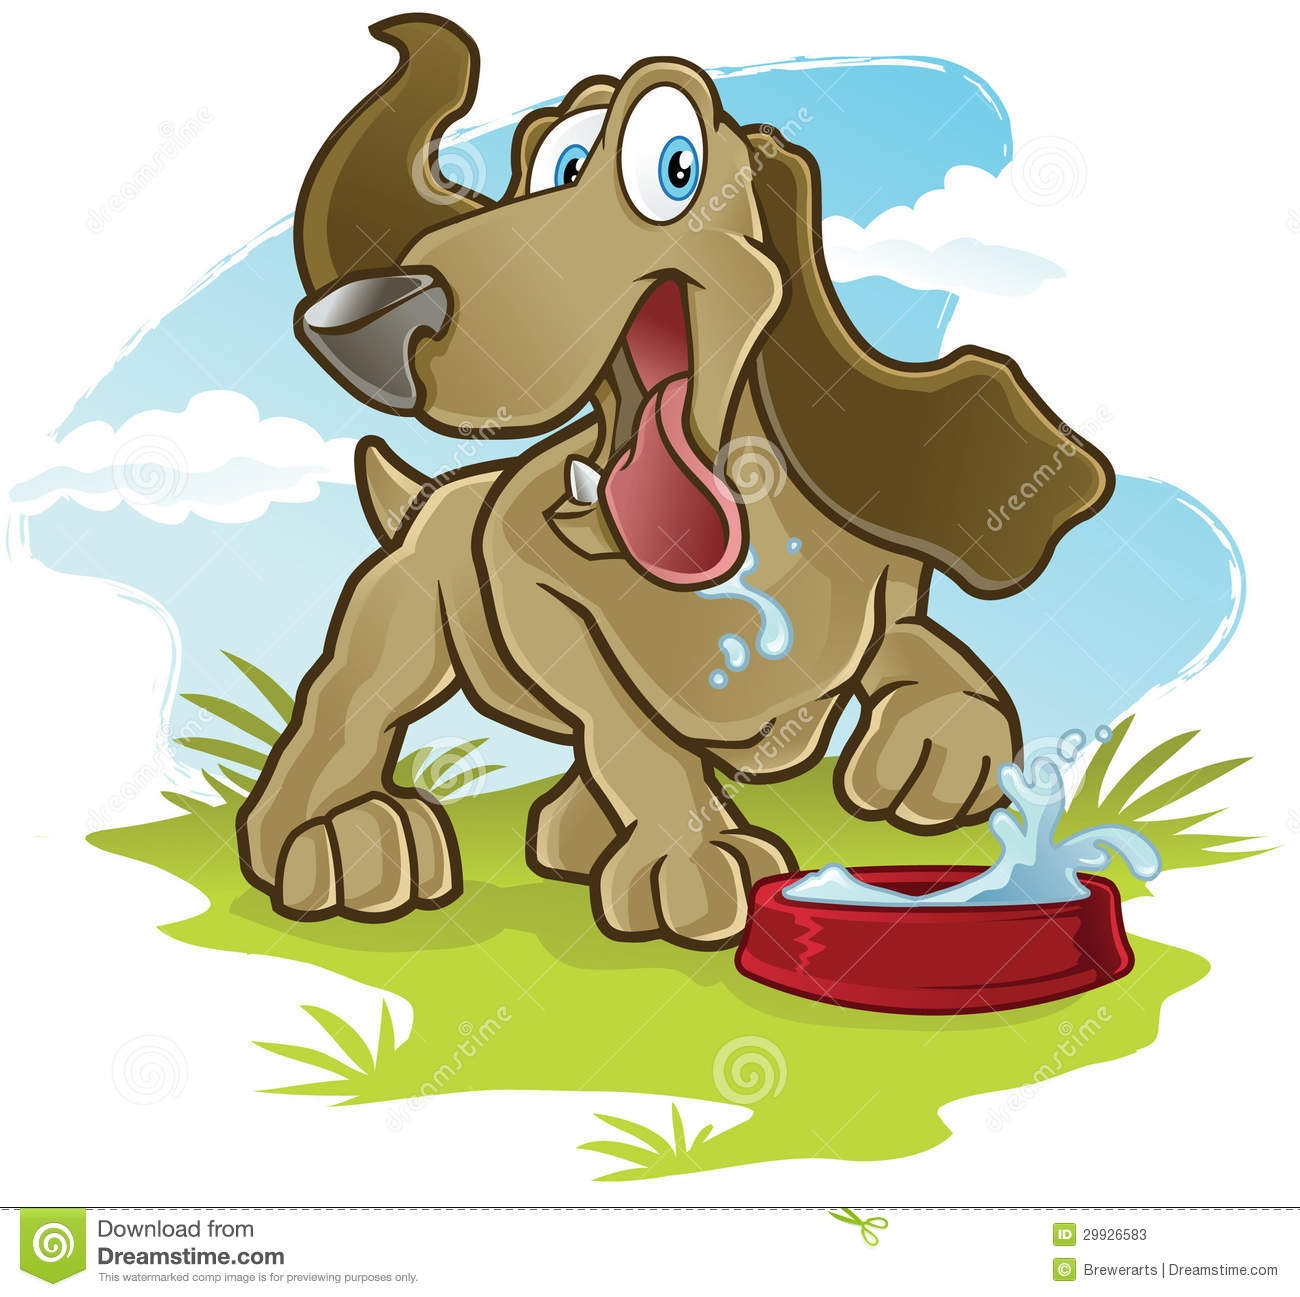 Animal clipart drink water Drink Water Water Animal Cli